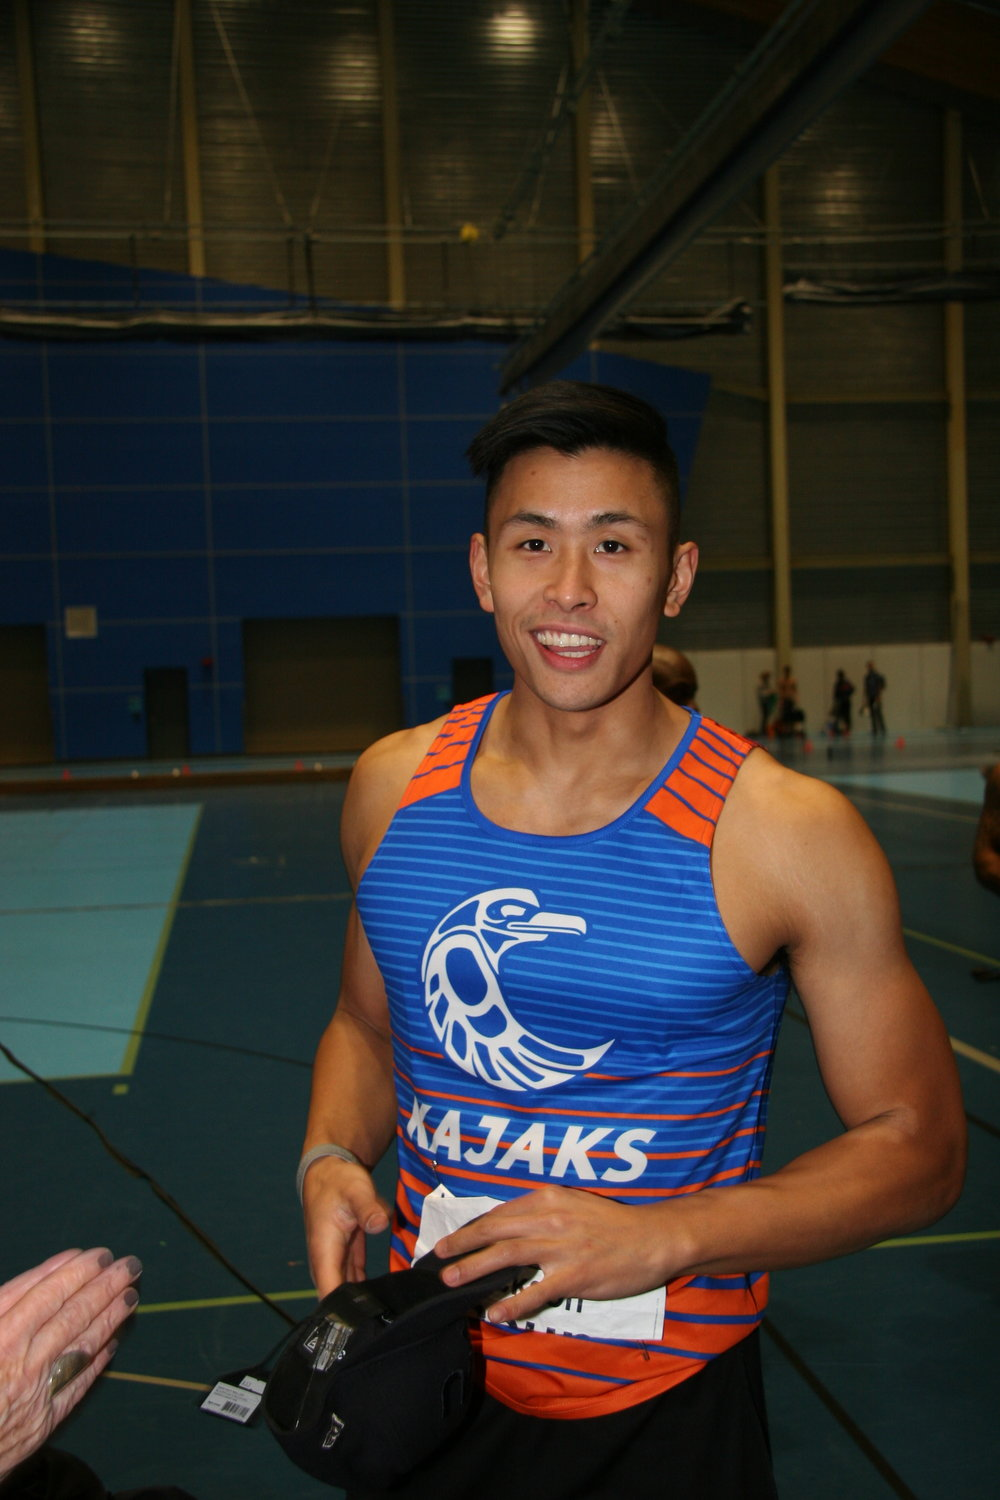 Jackson Cheung with new meet record in 60m hurdles